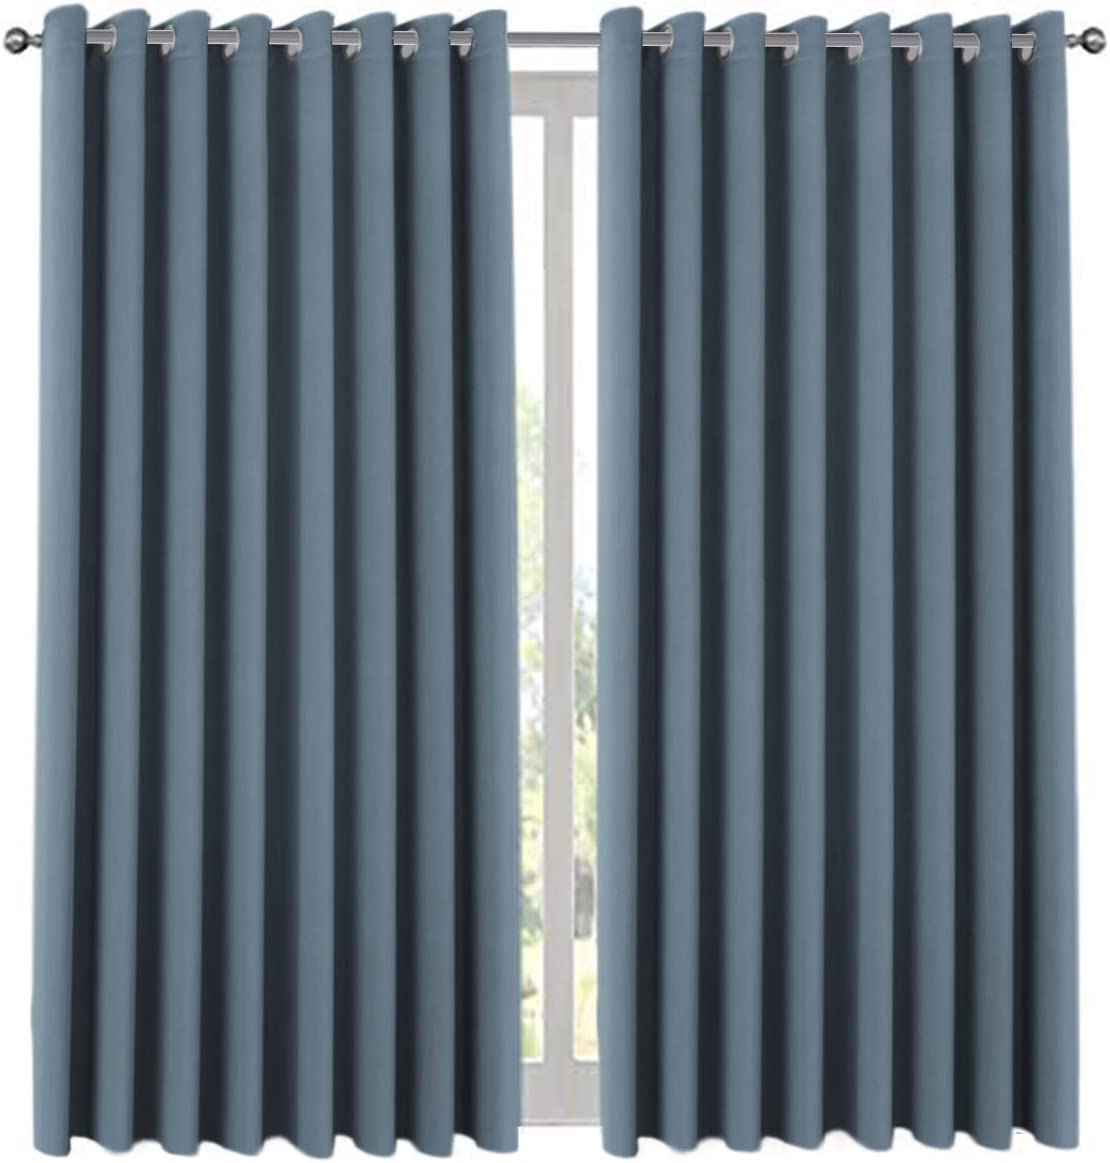 """H.VERSAILTEX Premium Room Divider (Nobody Can See Through, 9' Tall x 8.5' Wide), Blackout Curtain Panels, Extra Long and Wide Thermal Insulated Patio Curtains -100"""" W by 108"""" L- Stone Blue, One Panel"""